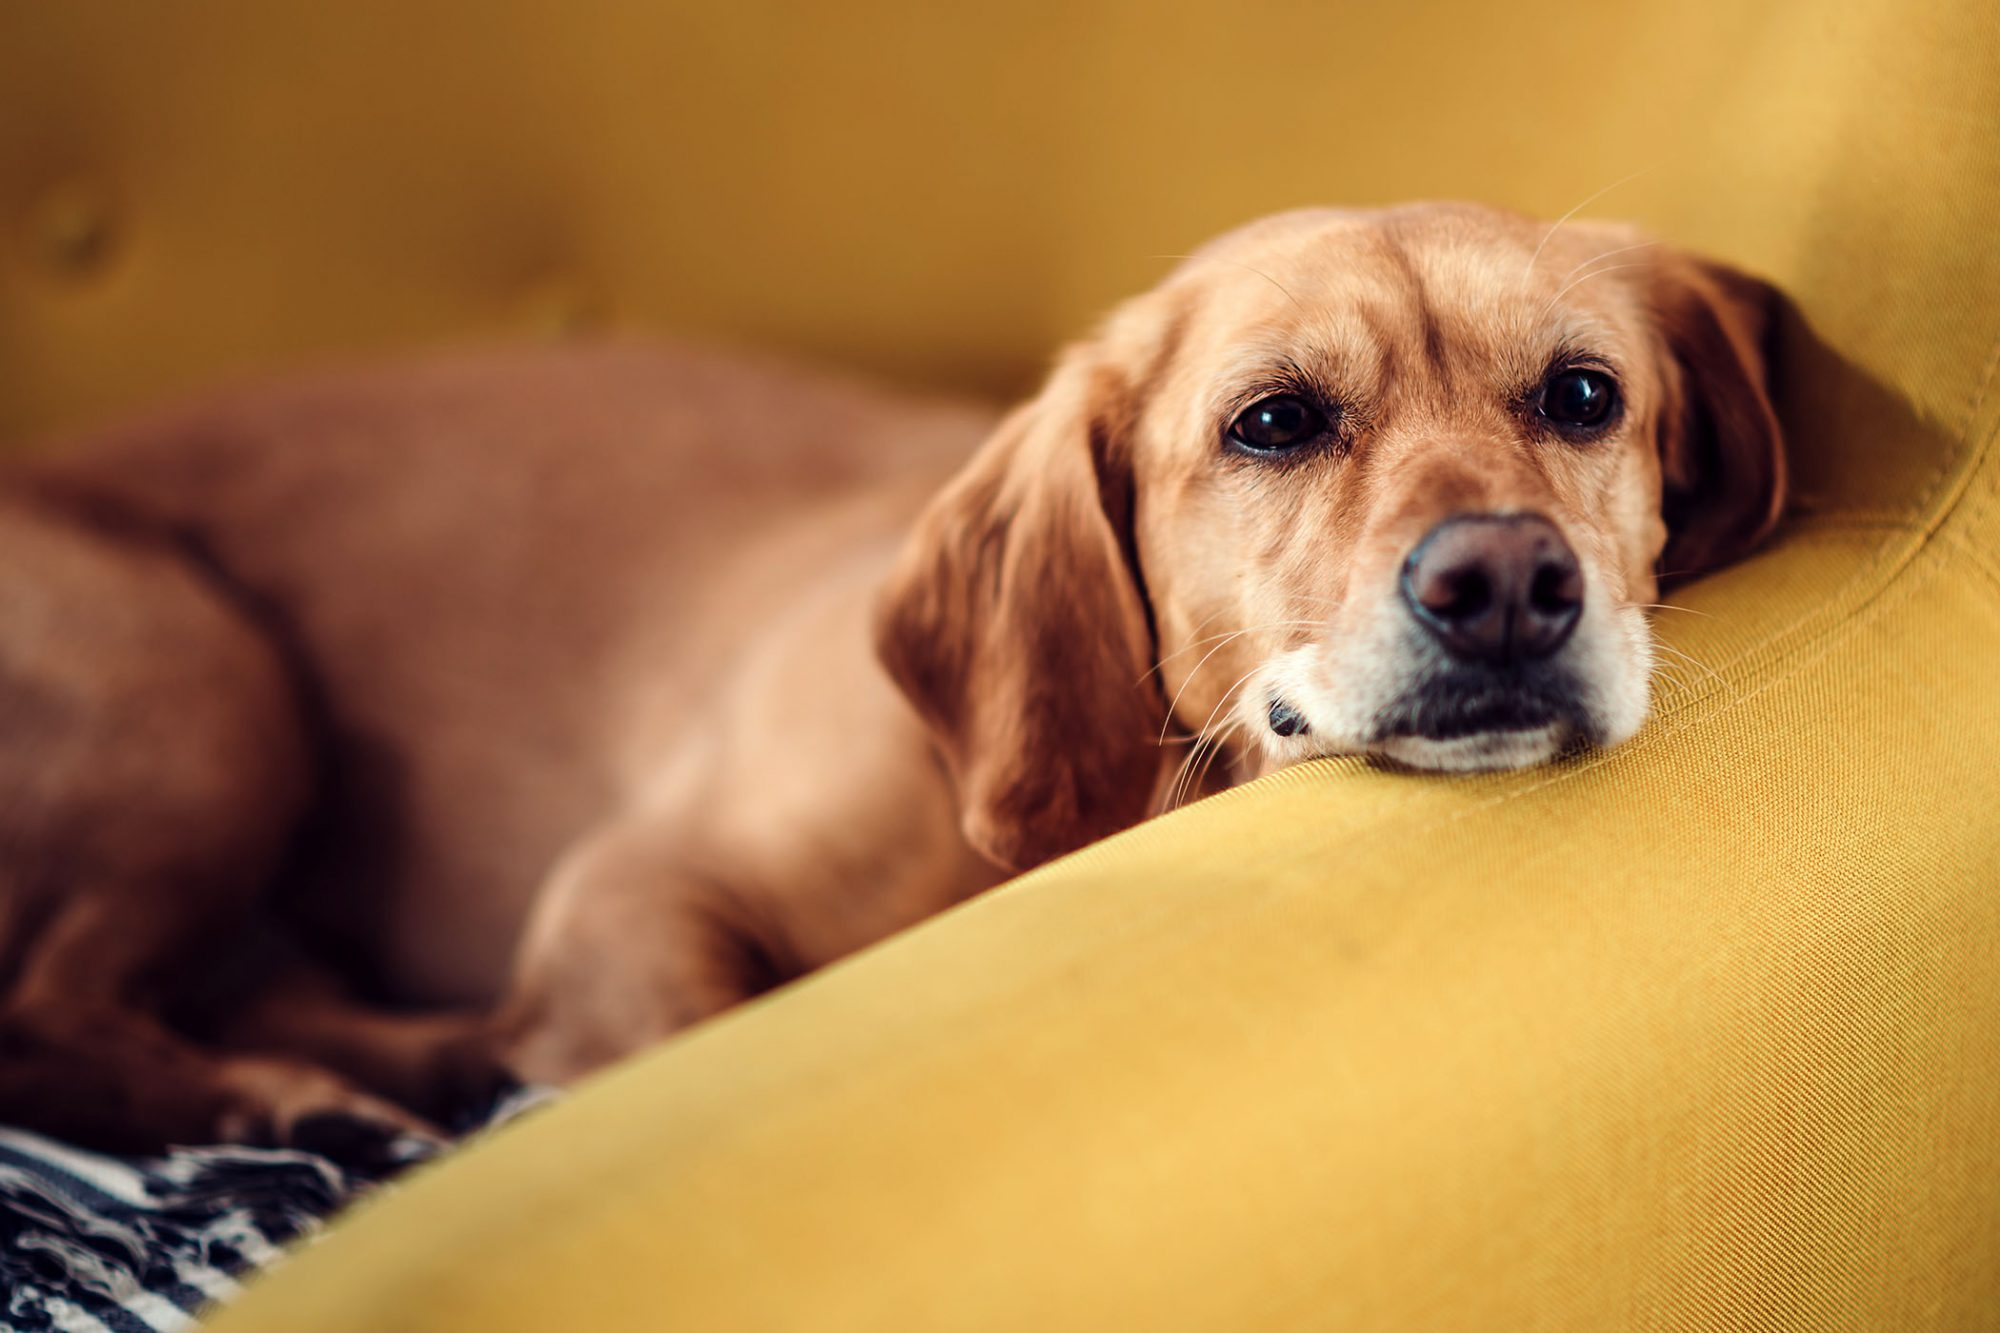 tired dog lying on yellow couch